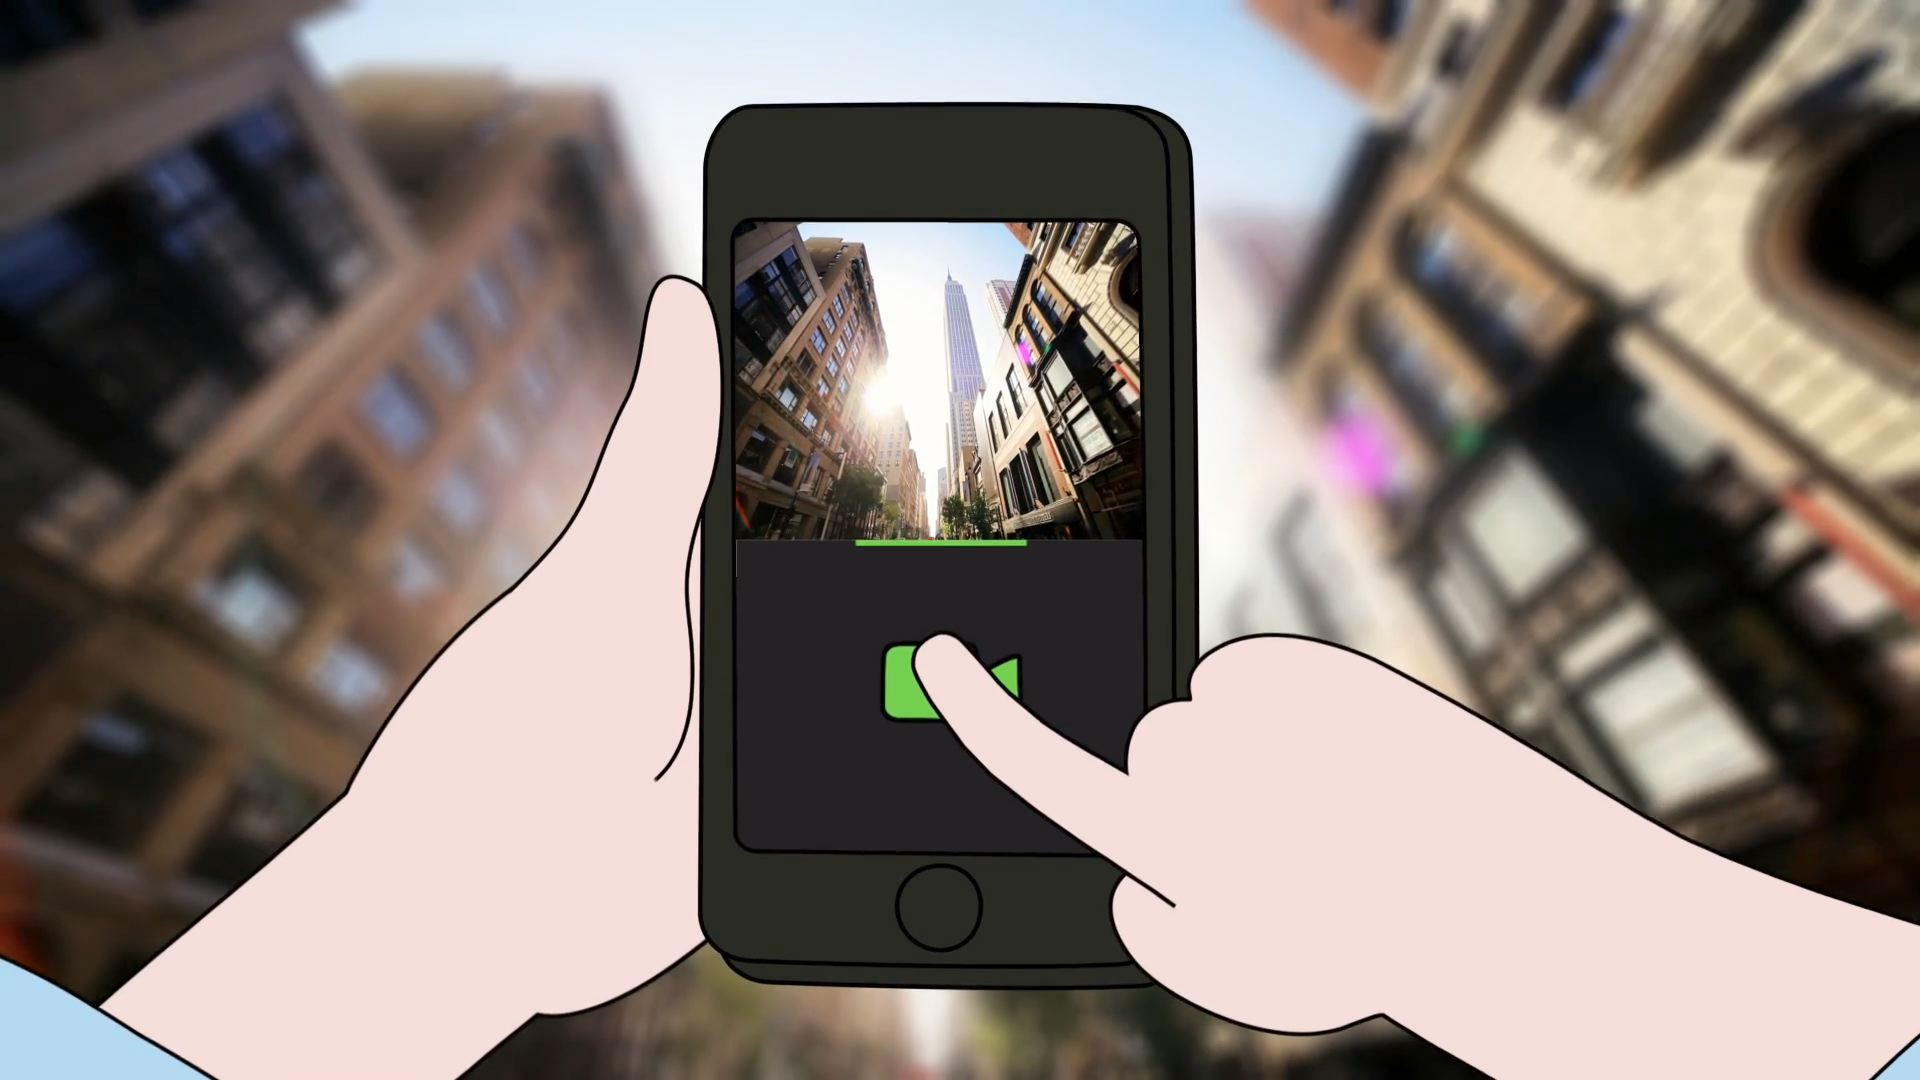 A 2D animated phone capturing a live-action video of a city scene